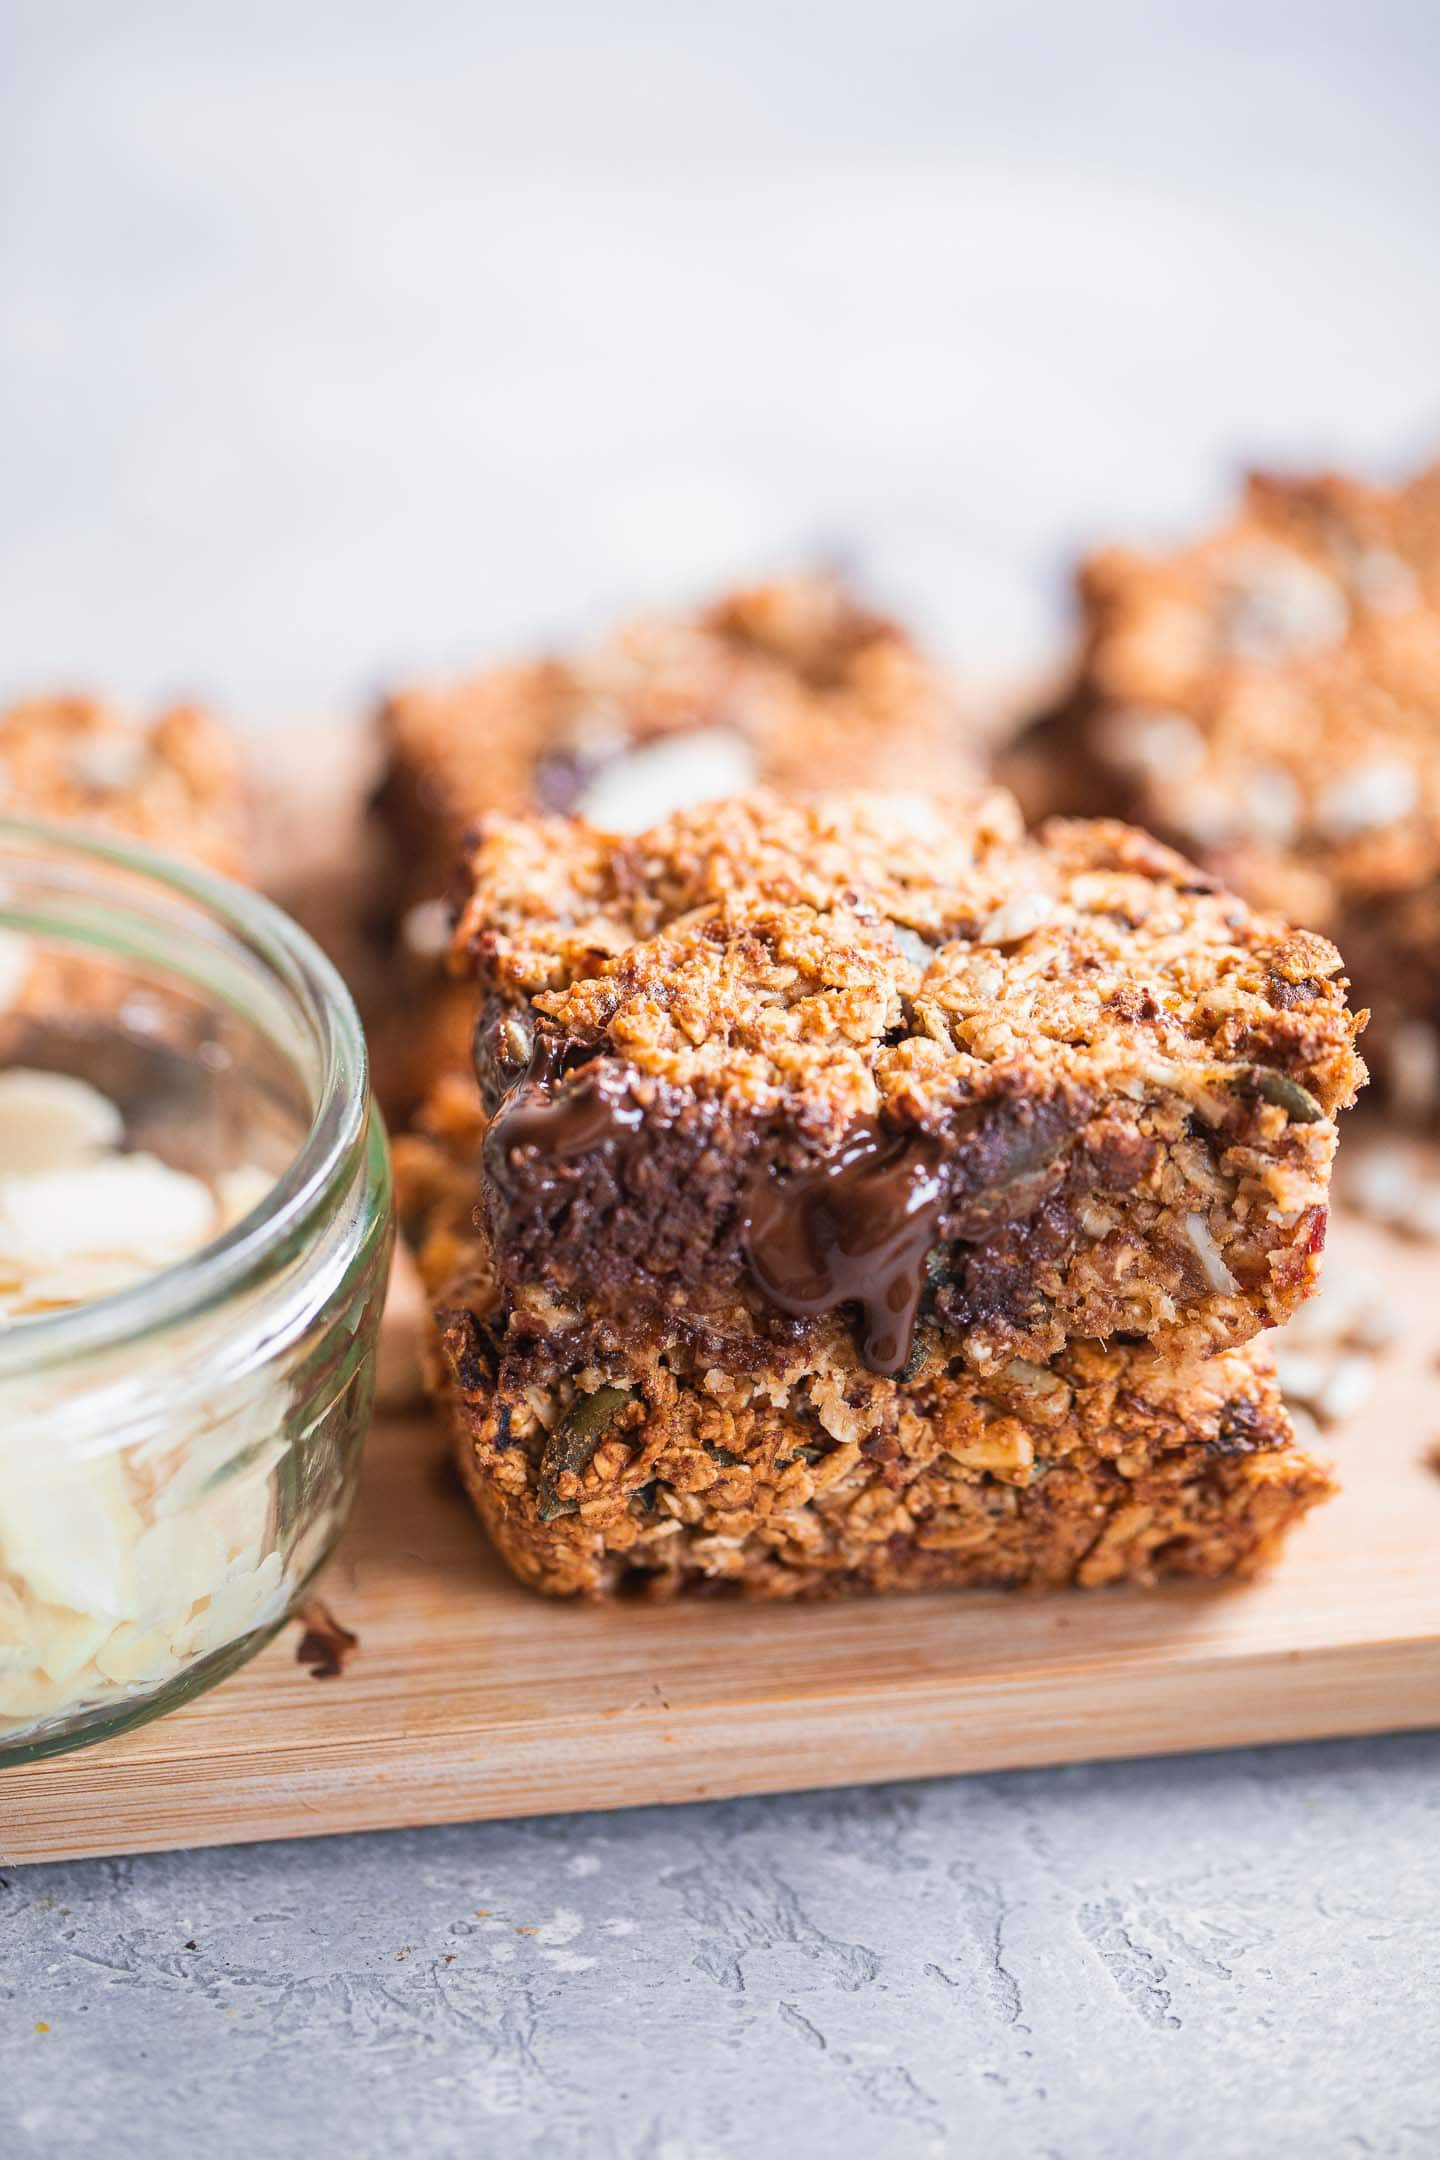 Gluten-free granola bars with chocolate